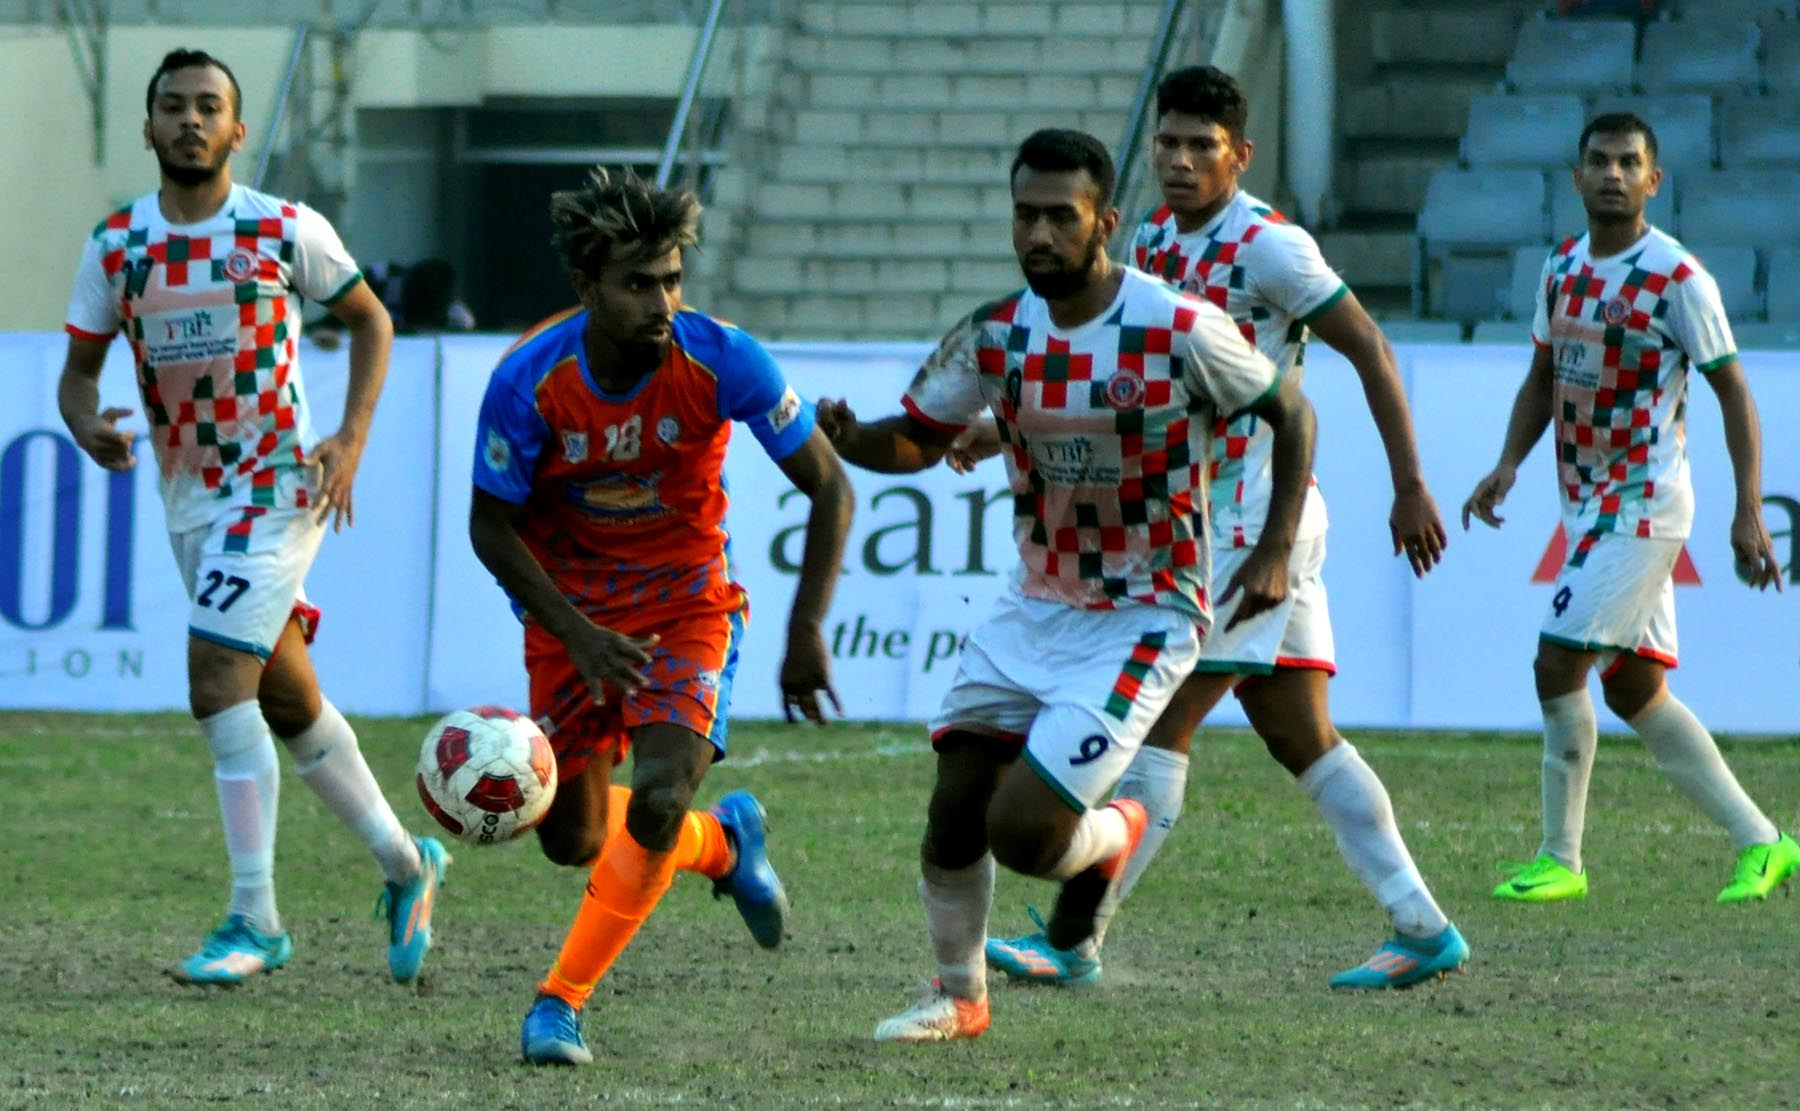 An exciting moment of the match of the Walton Independence Cup Football between Brothers Union Limited and Bangladesh Muktijoddha Sangsad Krira Chakra at the Bangabandhu National Stadium on Saturday. Brothers won the match 1-0.